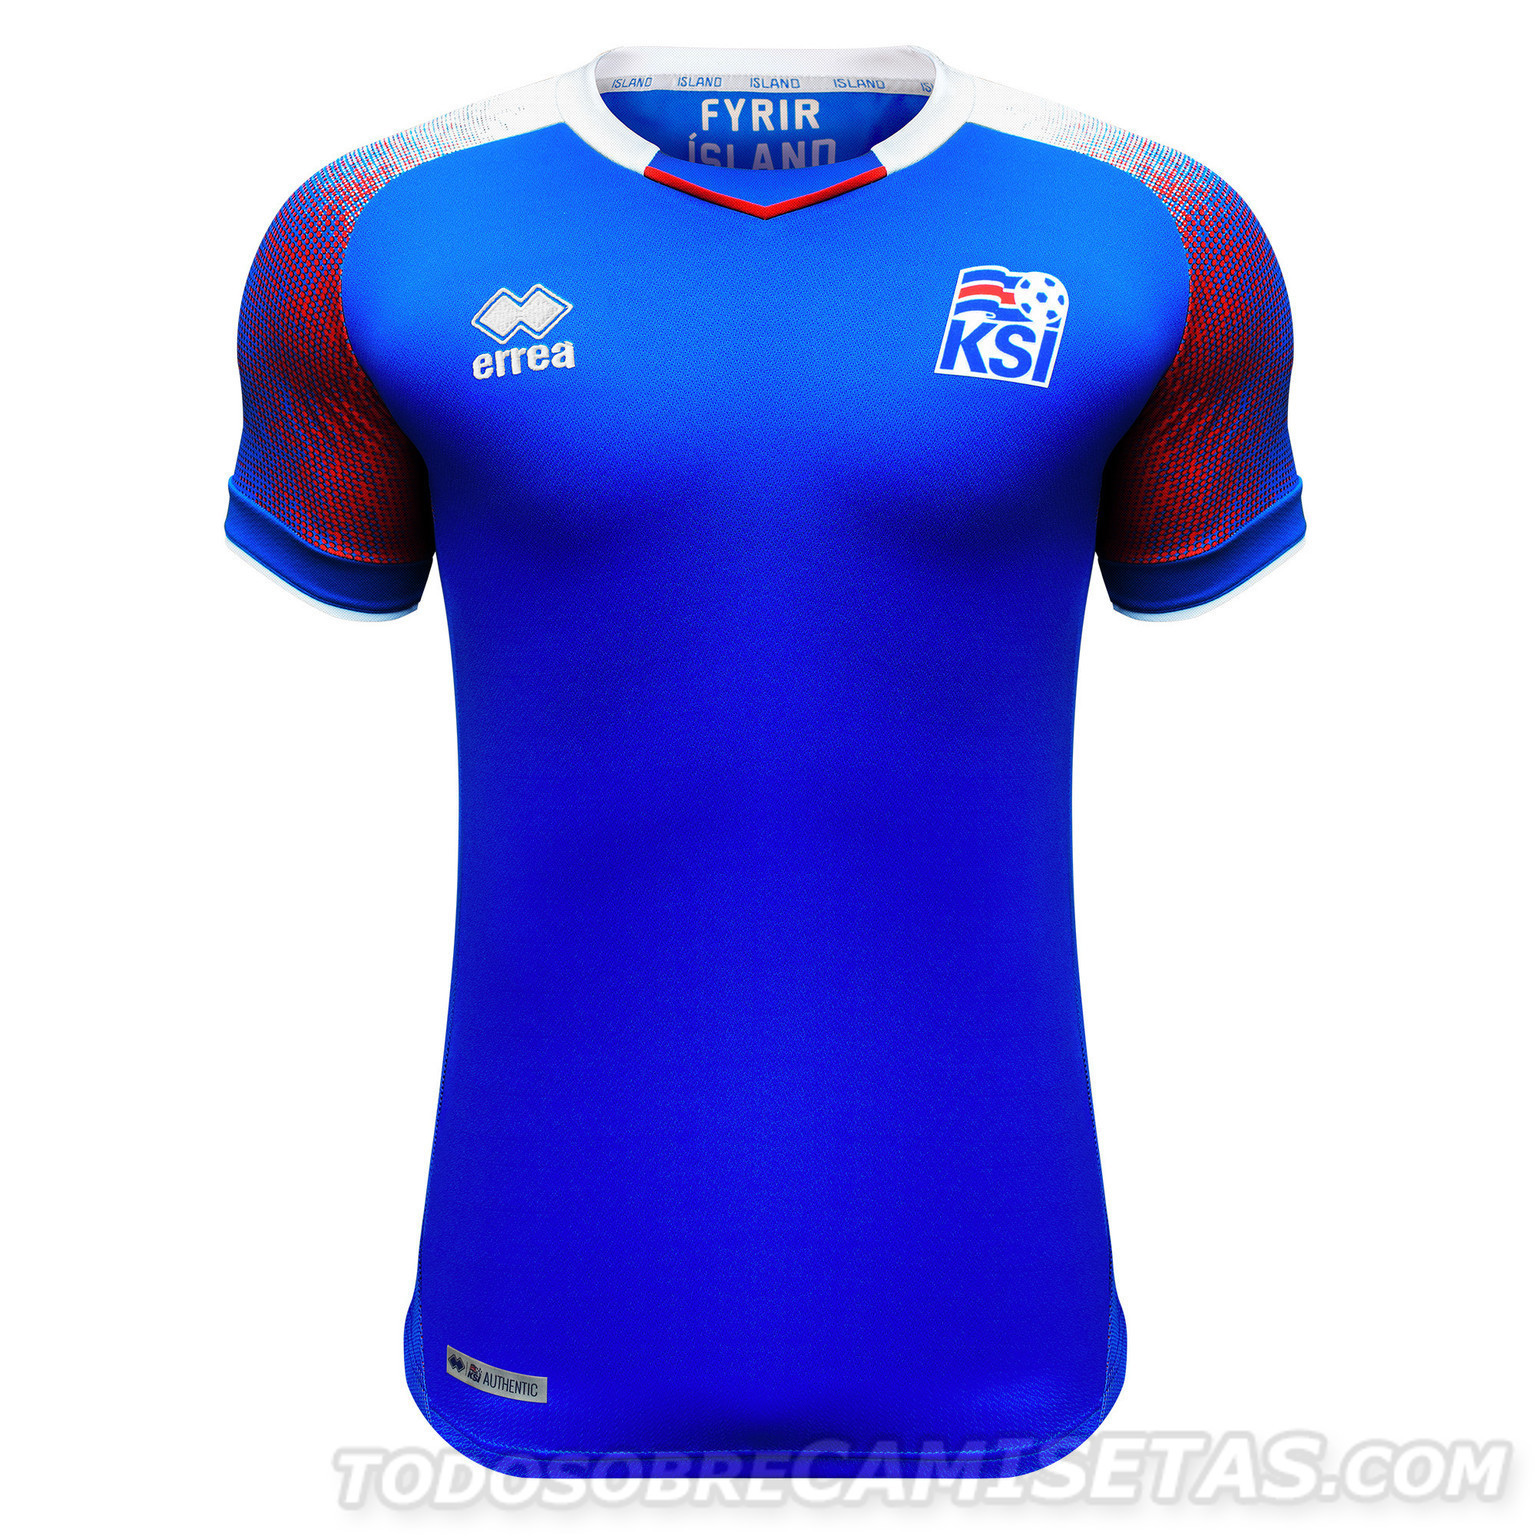 iceland-2018-world-cup-kits-errea-1.jpg